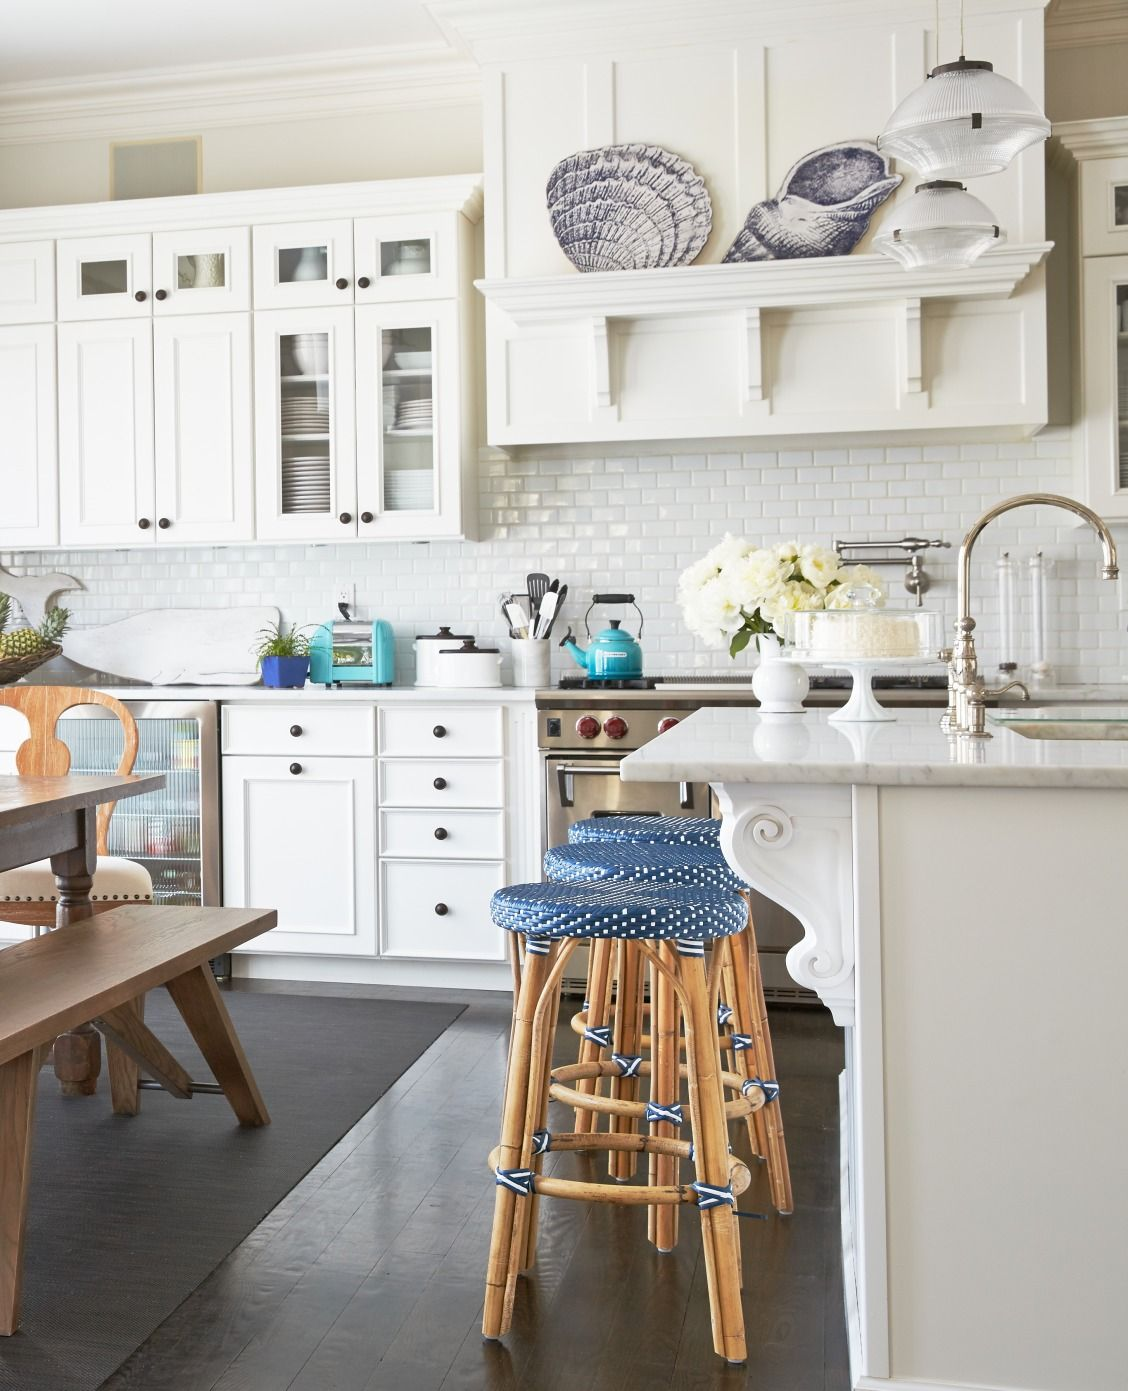 Obsessed With This Clean, Blue U0026 White Hamptons Kitchen Design And Decor! Part 87